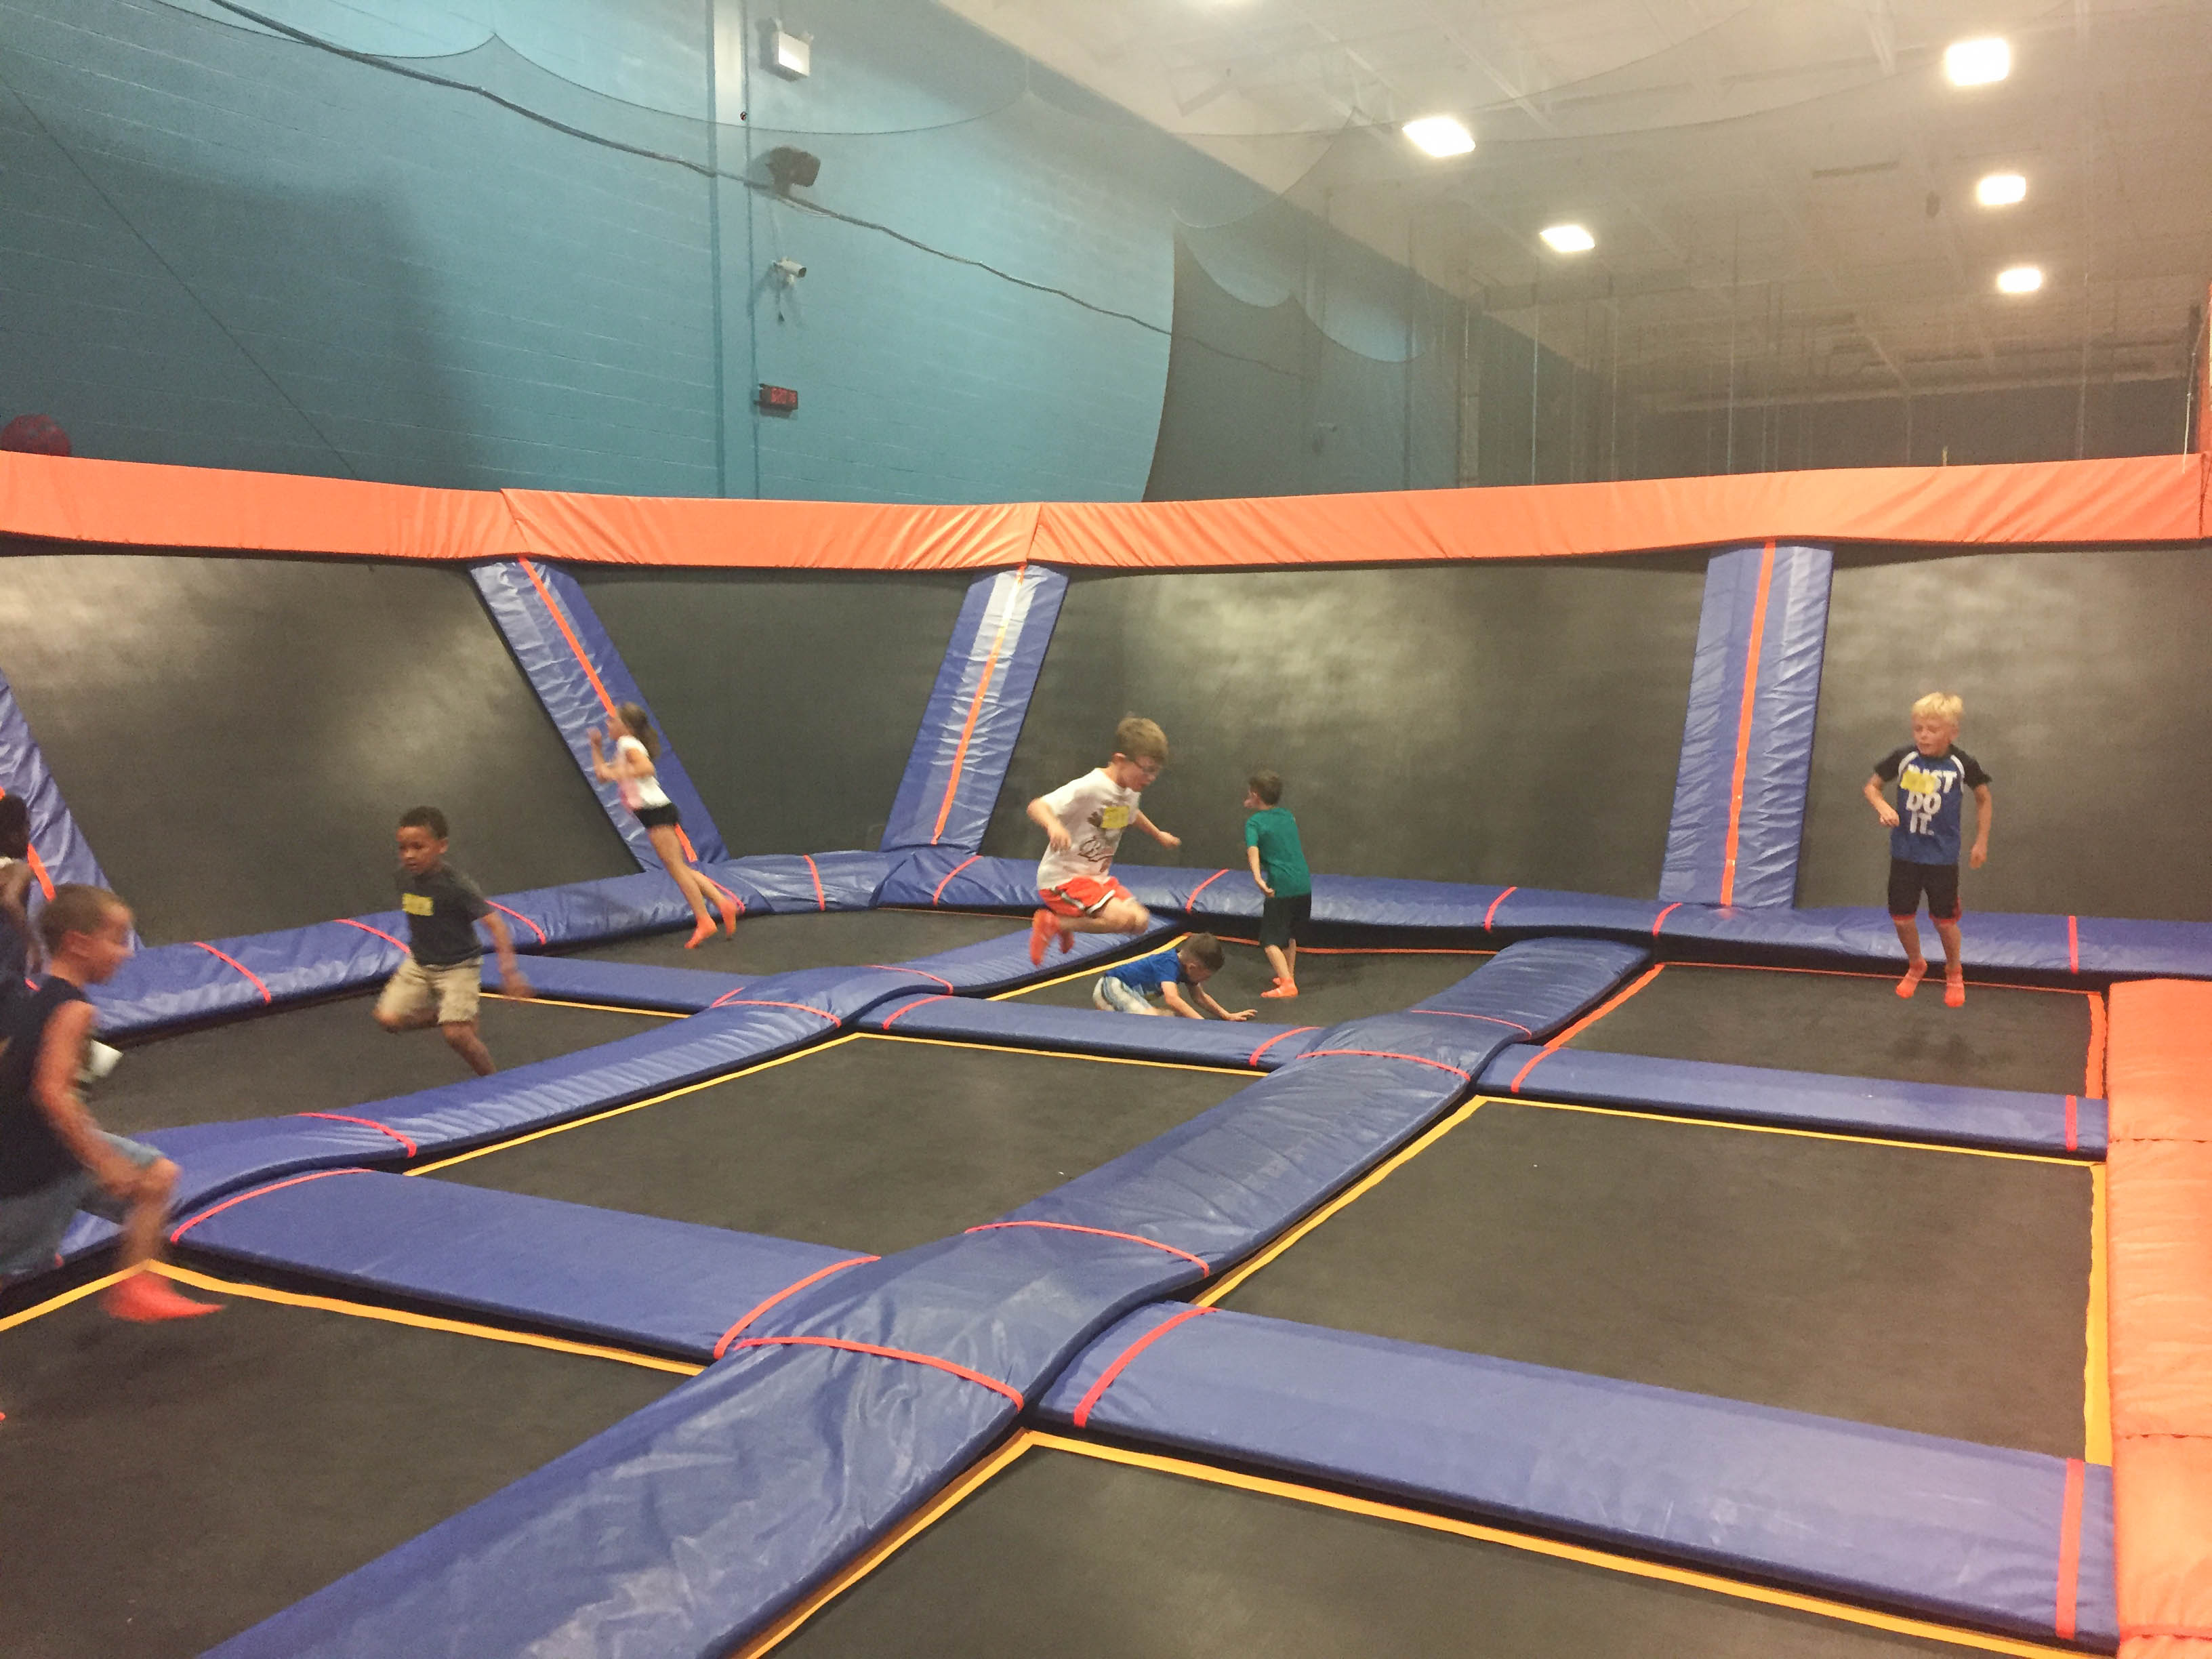 Sky Zone Trampoline Park Birthday Party; Dodgeball court; Livin' Life with Style